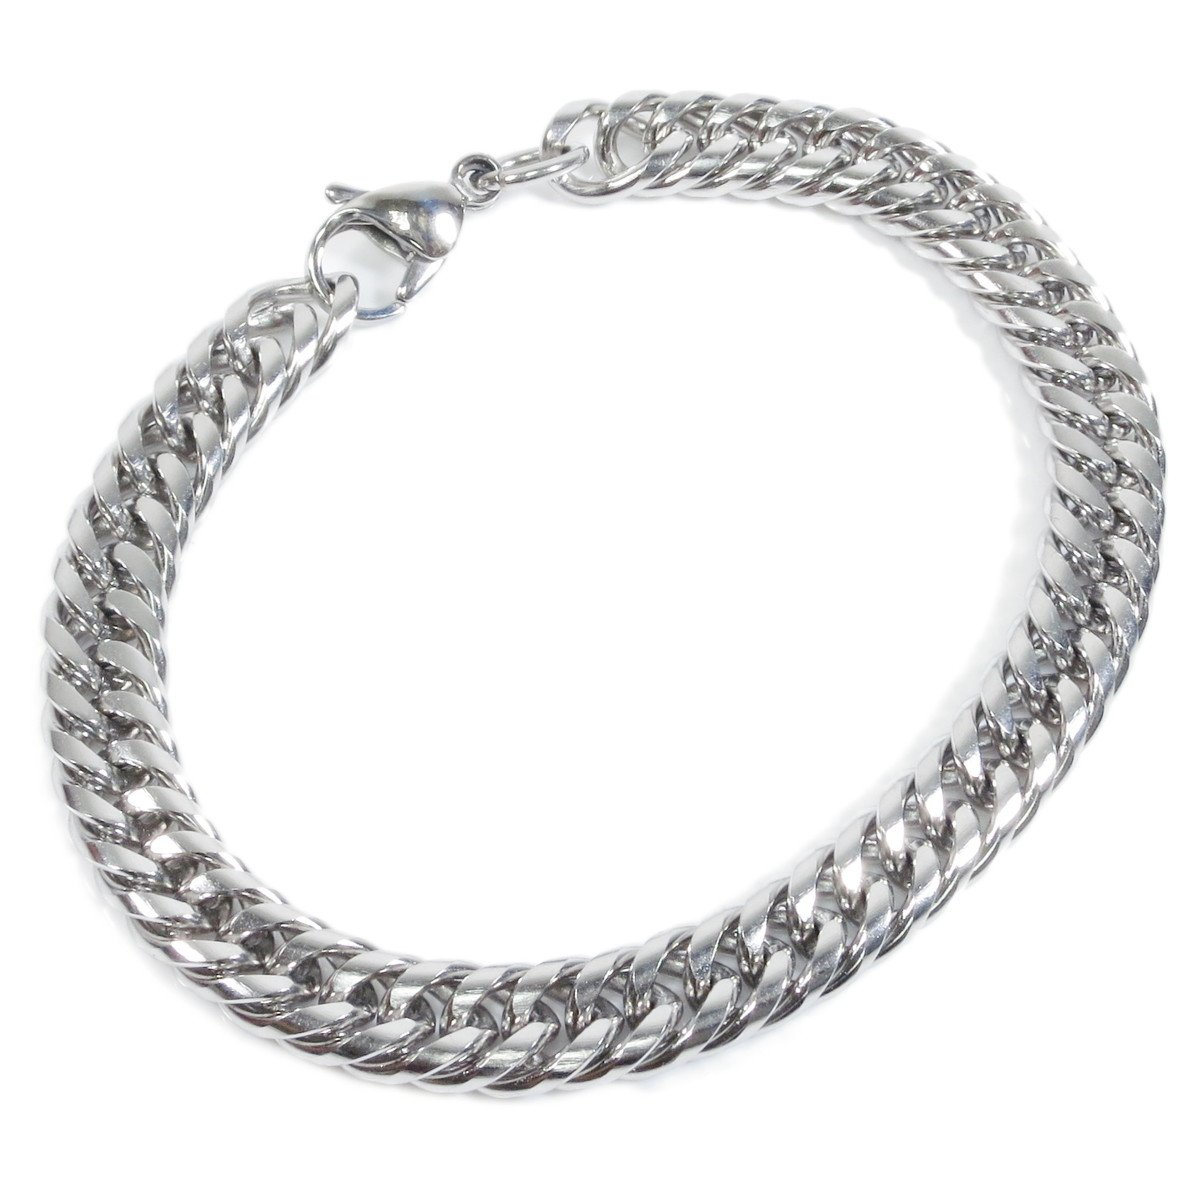 Stainless Steel Tight Double Link Curb Chain Bracelet 8mm Steelmeup 1Zk-010